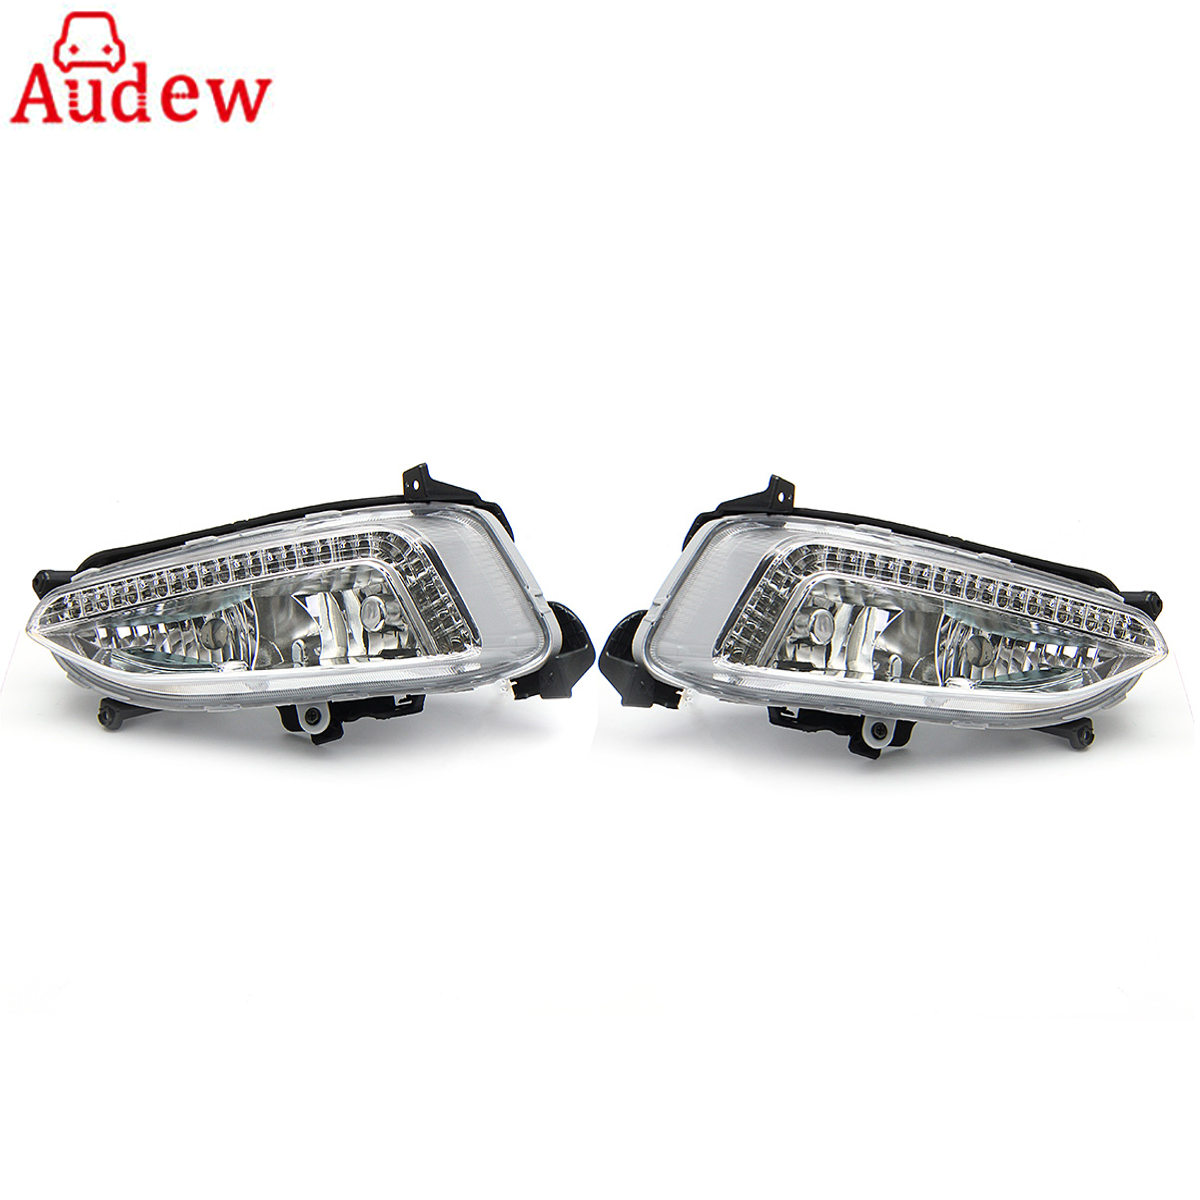 1Pair LED Car Light Assembly DRL Daytime Running Light Fog Lamp For Hyundai IX45 Santa Fe 2013 2014 DC 12V 5500K~6500K